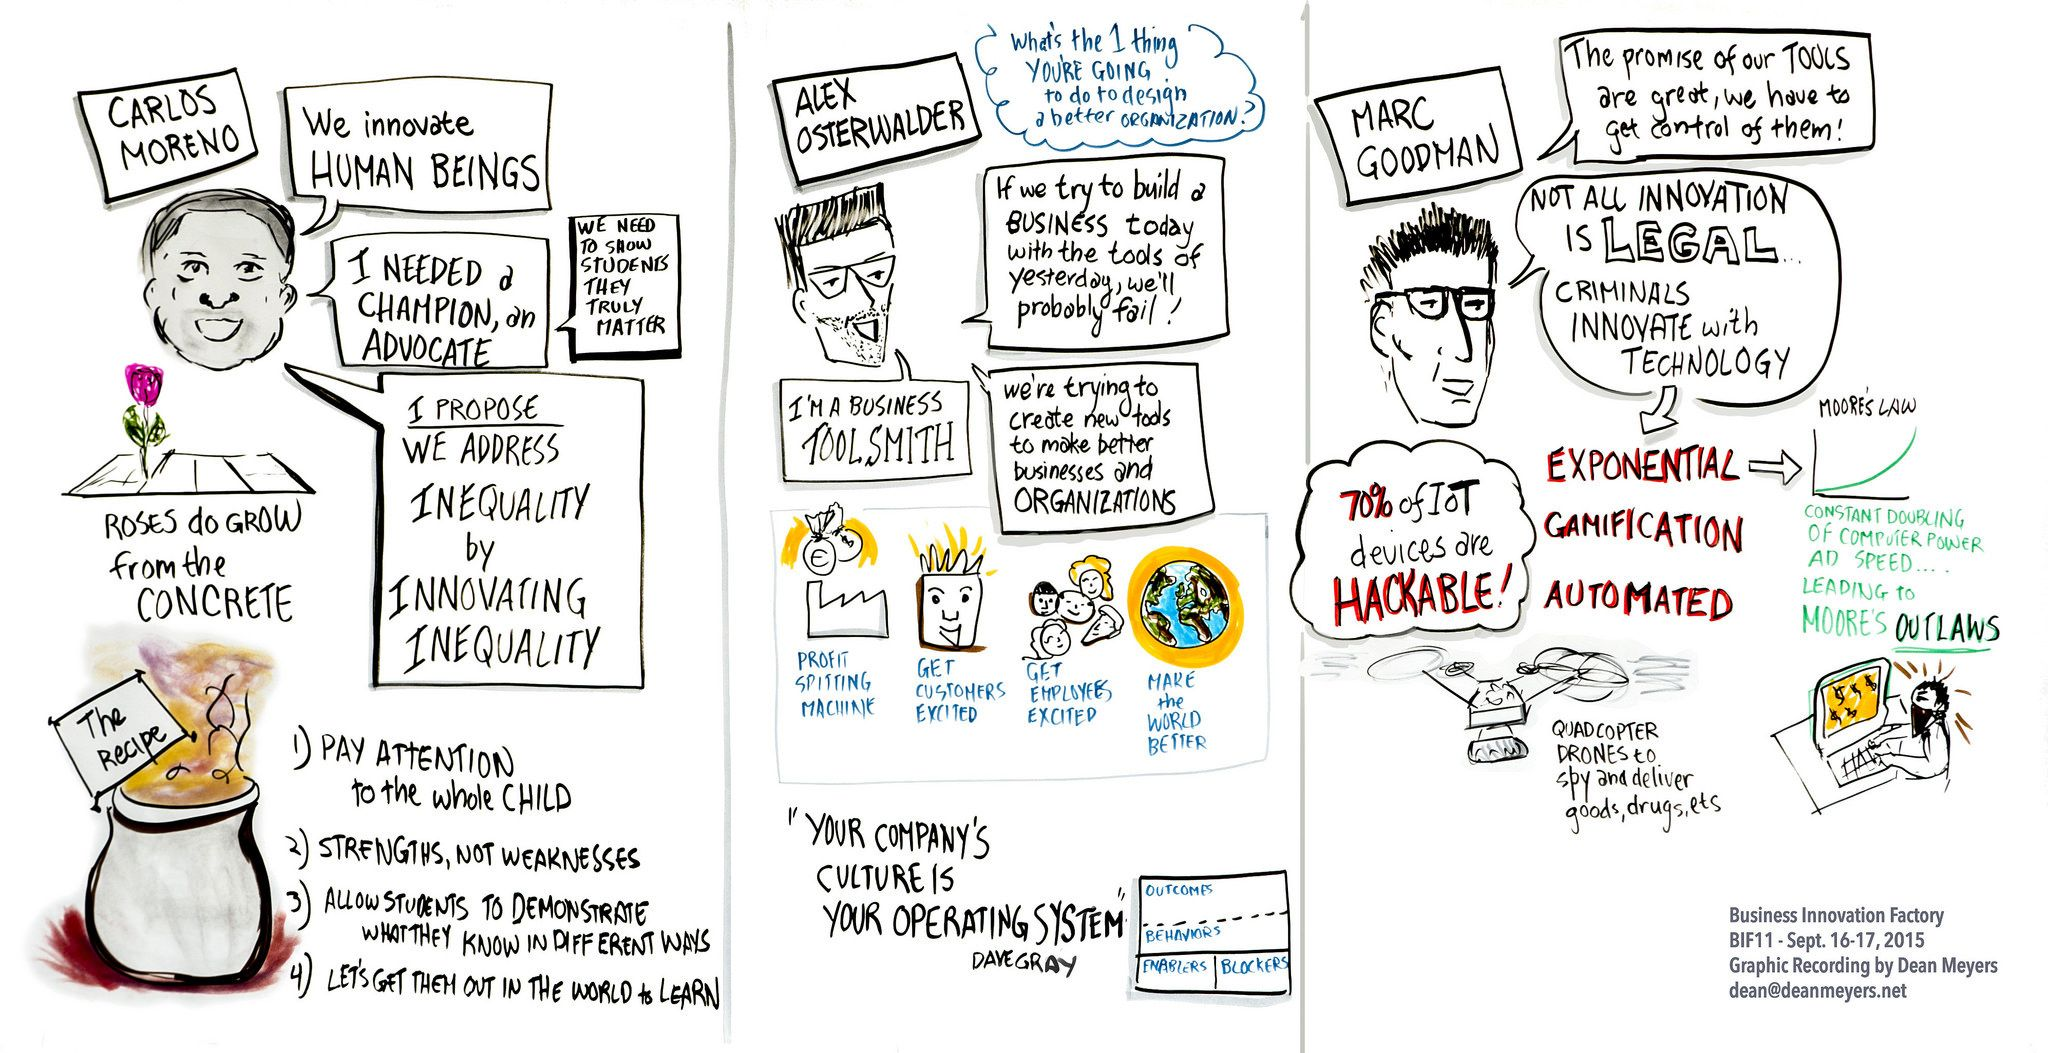 Dean Meyers Graphic from BIF2015 Innovation Summit featuring educator Carlos Moreno, Alexander Osterwalder of Strategyzer, and Marc Goodman